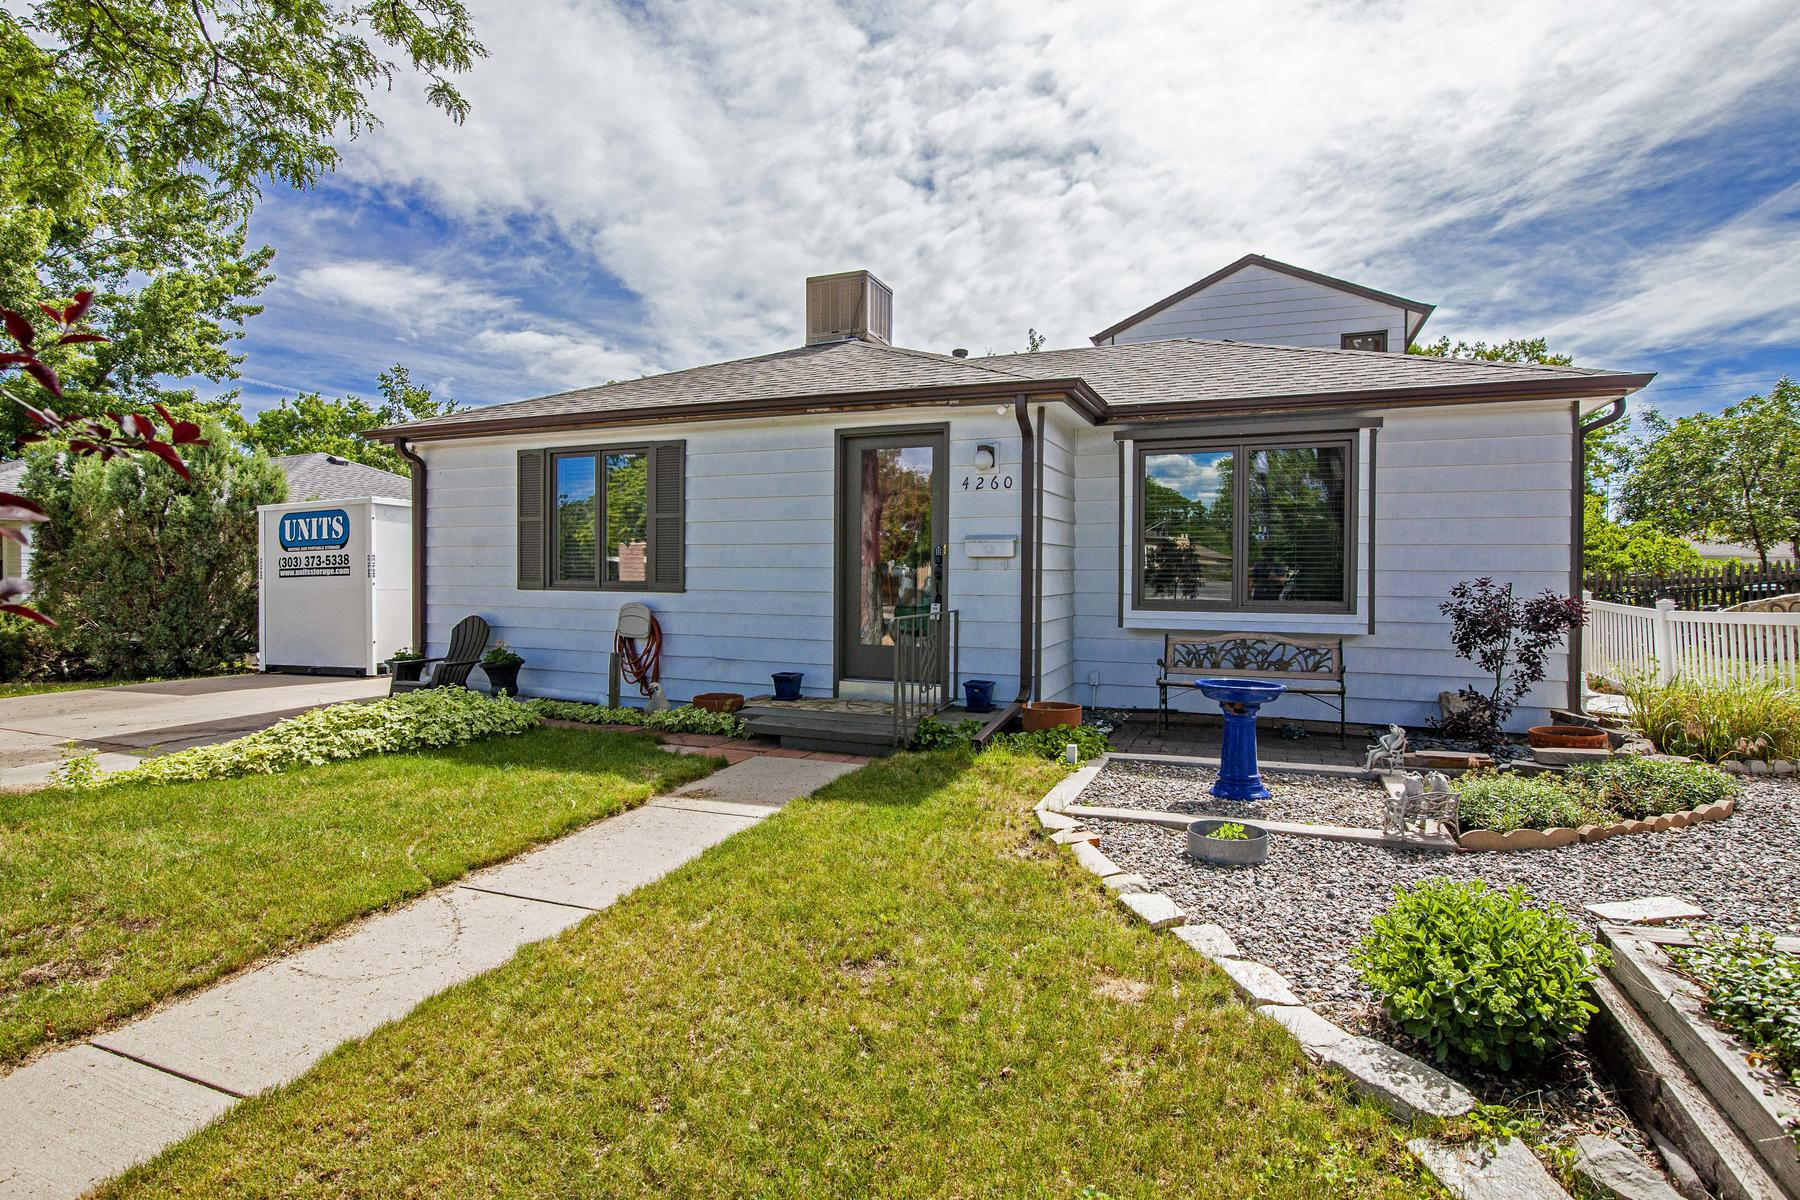 Single Family Homes for Sale at Wow!! Location & Tons of Square Footage 4260 Harlan Street, Wheat Ridge, Colorado 80022 United States